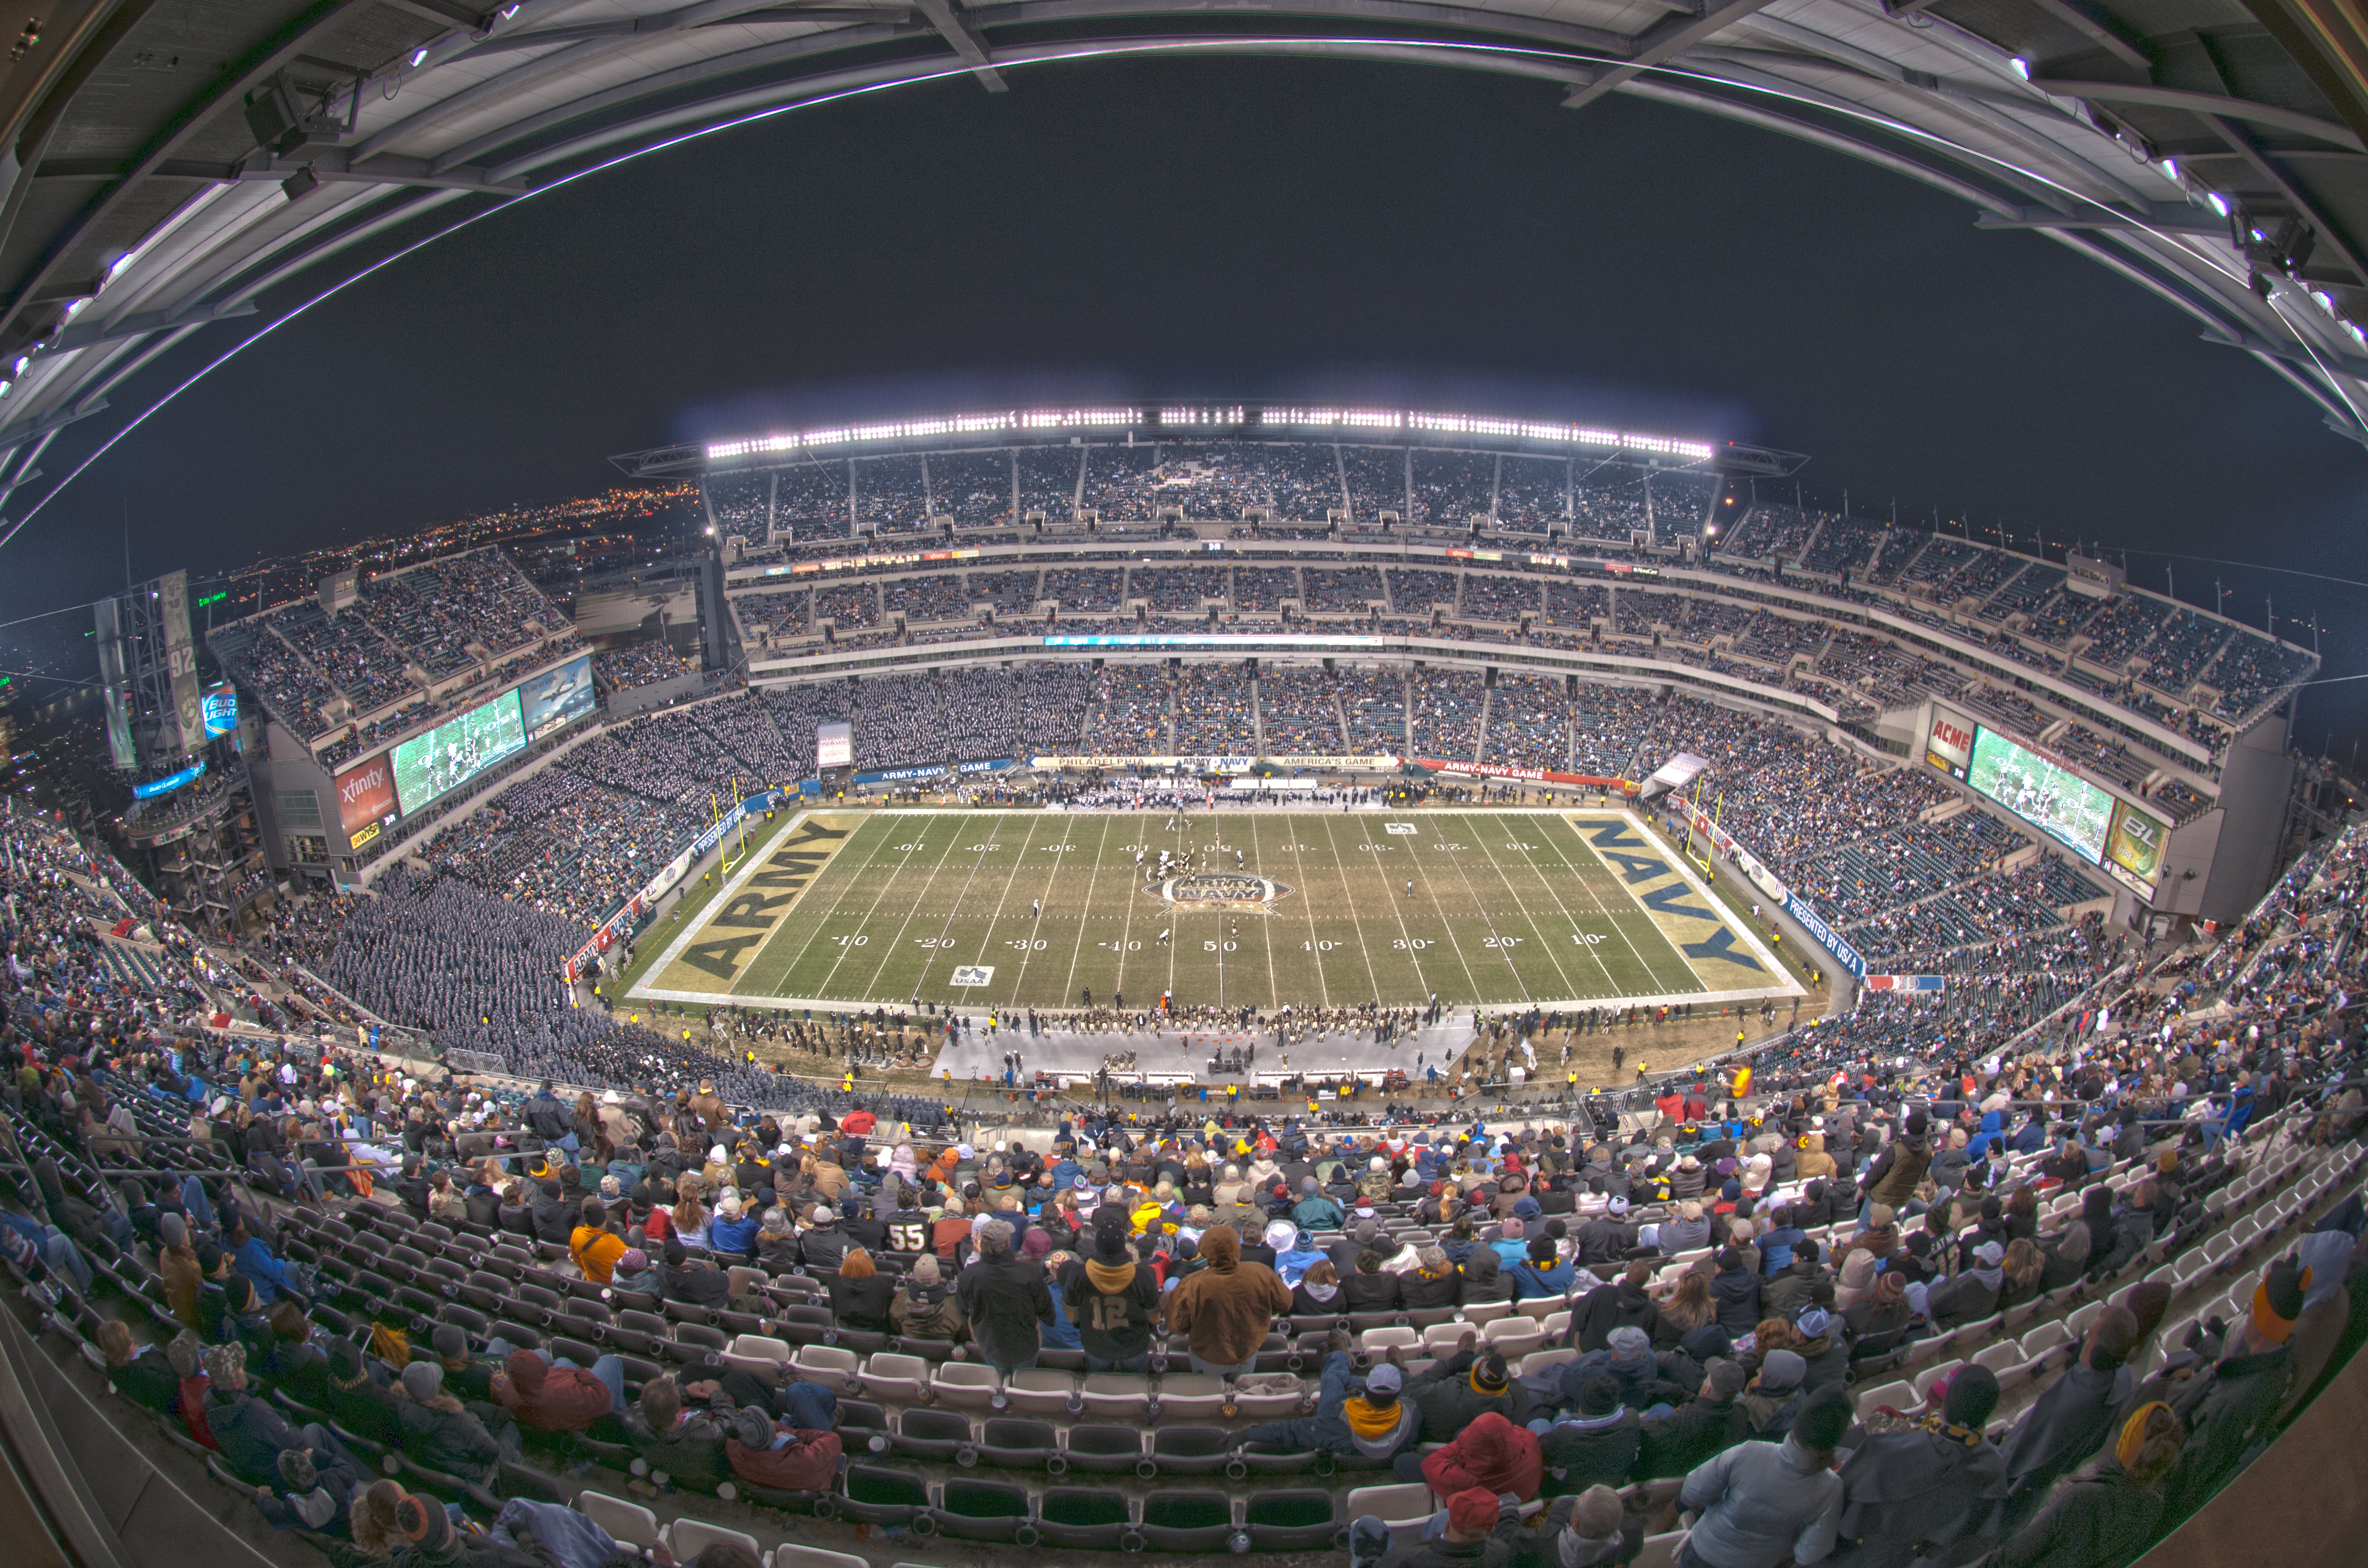 Philadelphia's Lincoln Financial Field will host Army-Navy showdowns in 2017, 2018, 2019, 2020 and 2022. (Staff/file)